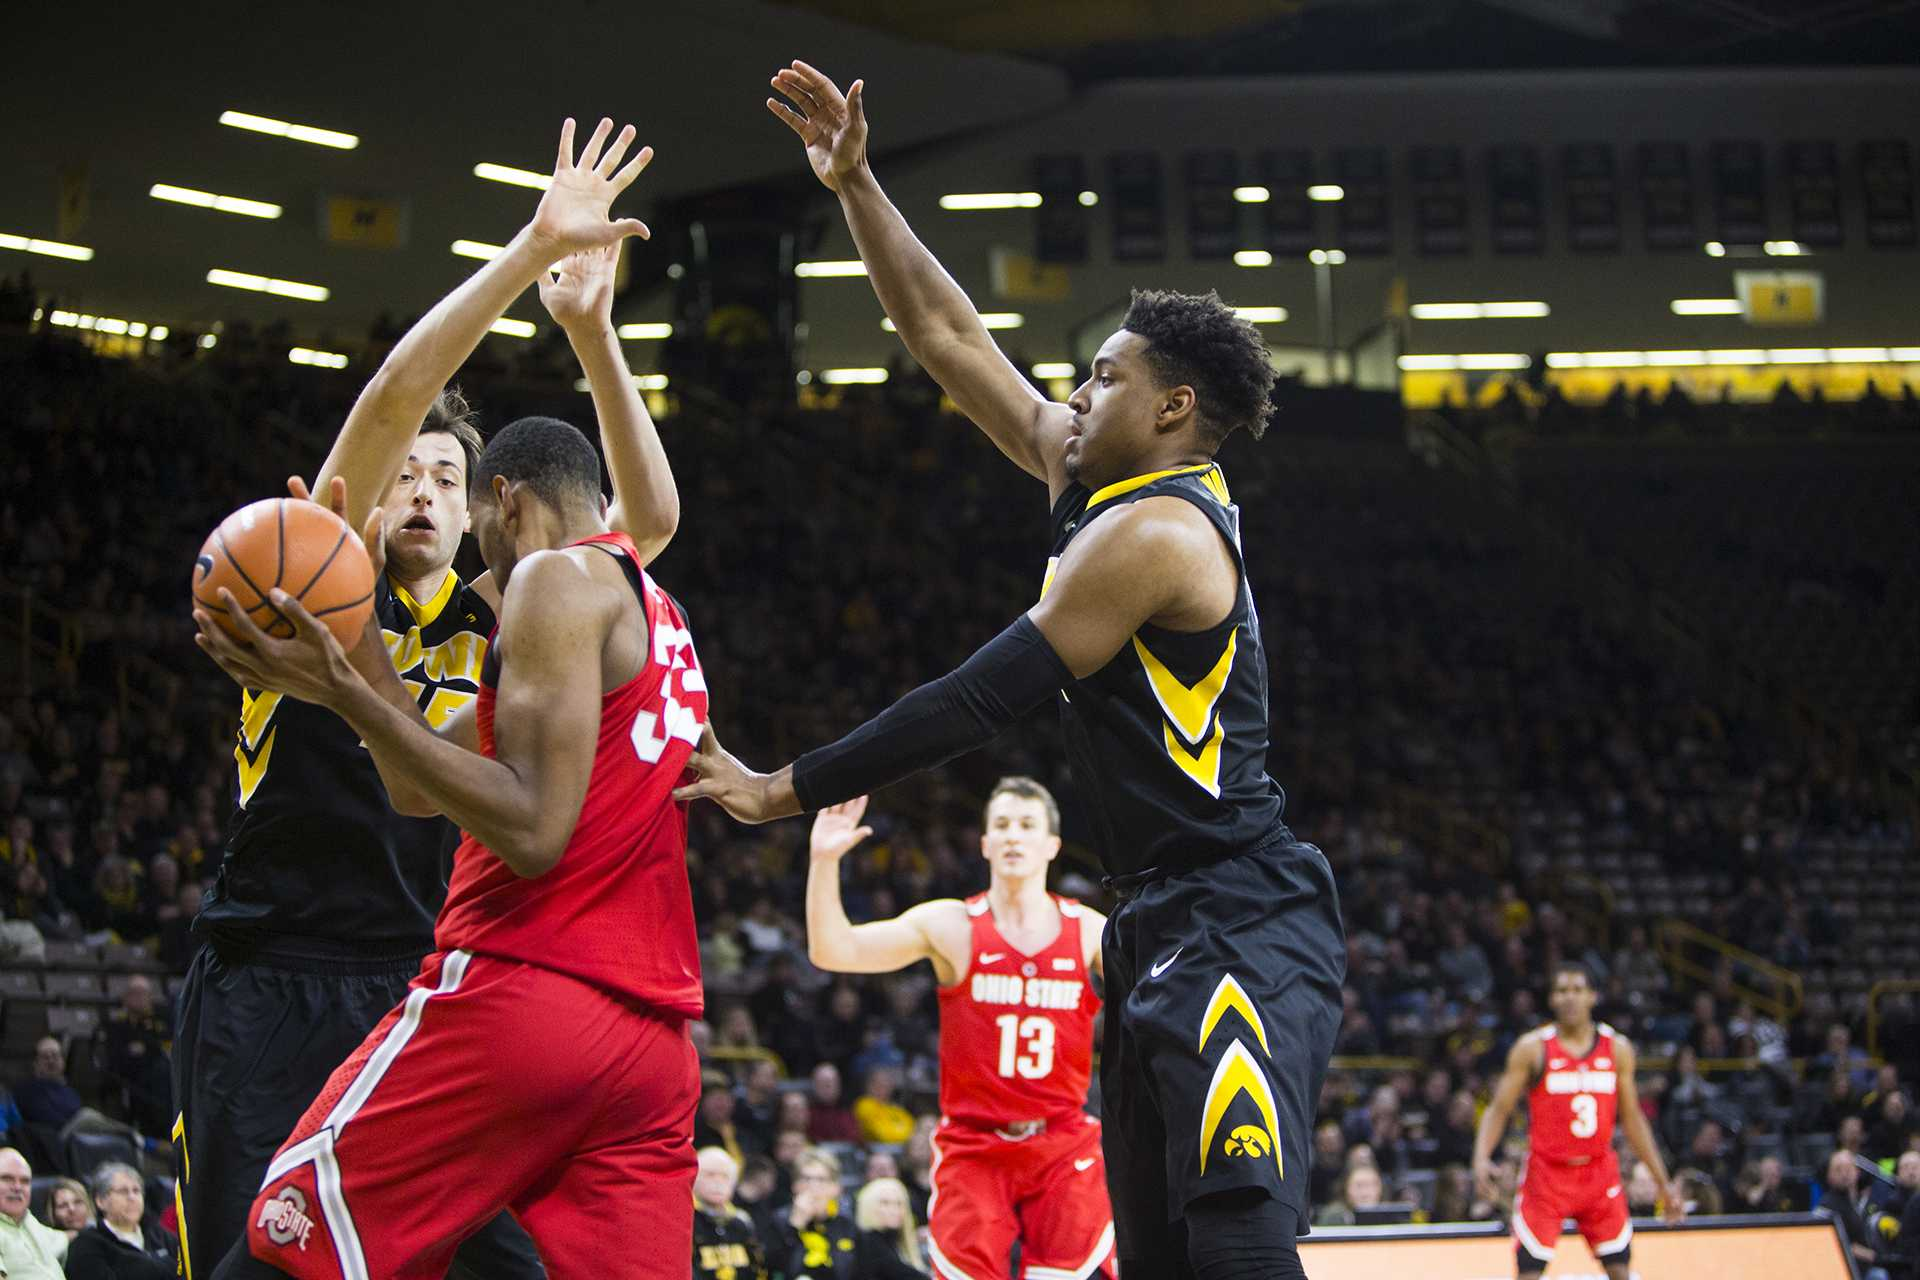 Iowa forward Ryan Kriener and Dom Uhl cover Ohio State forward Kieta Bates-Diop during an Iowa/Ohio State men's basketball game in Carver-Hawkeye Arena on Thursday, Jan. 4, 2018. The Buckeyes defeated the Hawkeyes, 92-81. (Joseph Cress/The Daily Iowan)